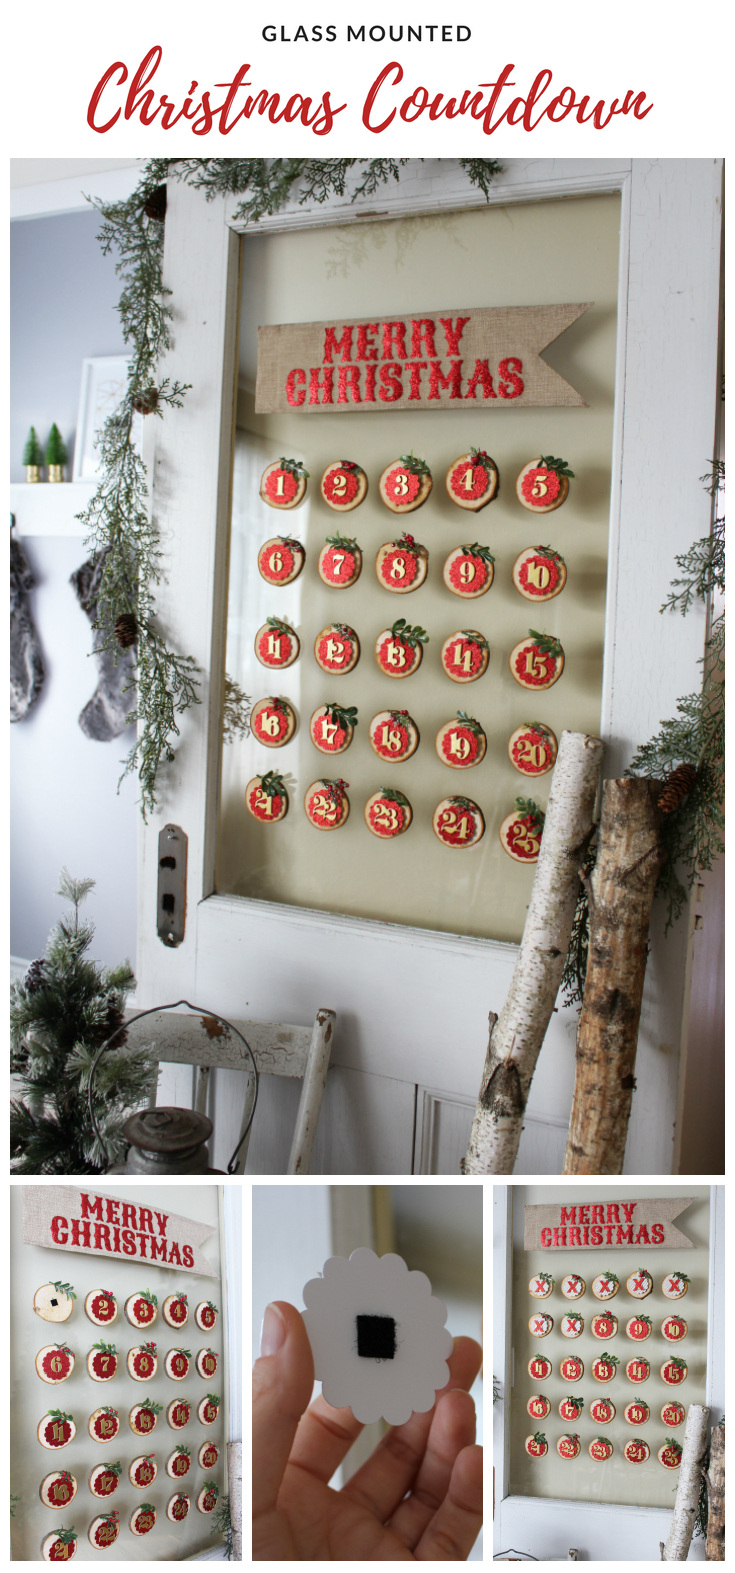 Glass Mounted Christmas Countdown. This wood slice Christmas Countdown can be used year after year. A beautiful way to countdown to Christmas. A fun DIY Christmas Countdown project! #christmas #christmascountdown #christmasdecor